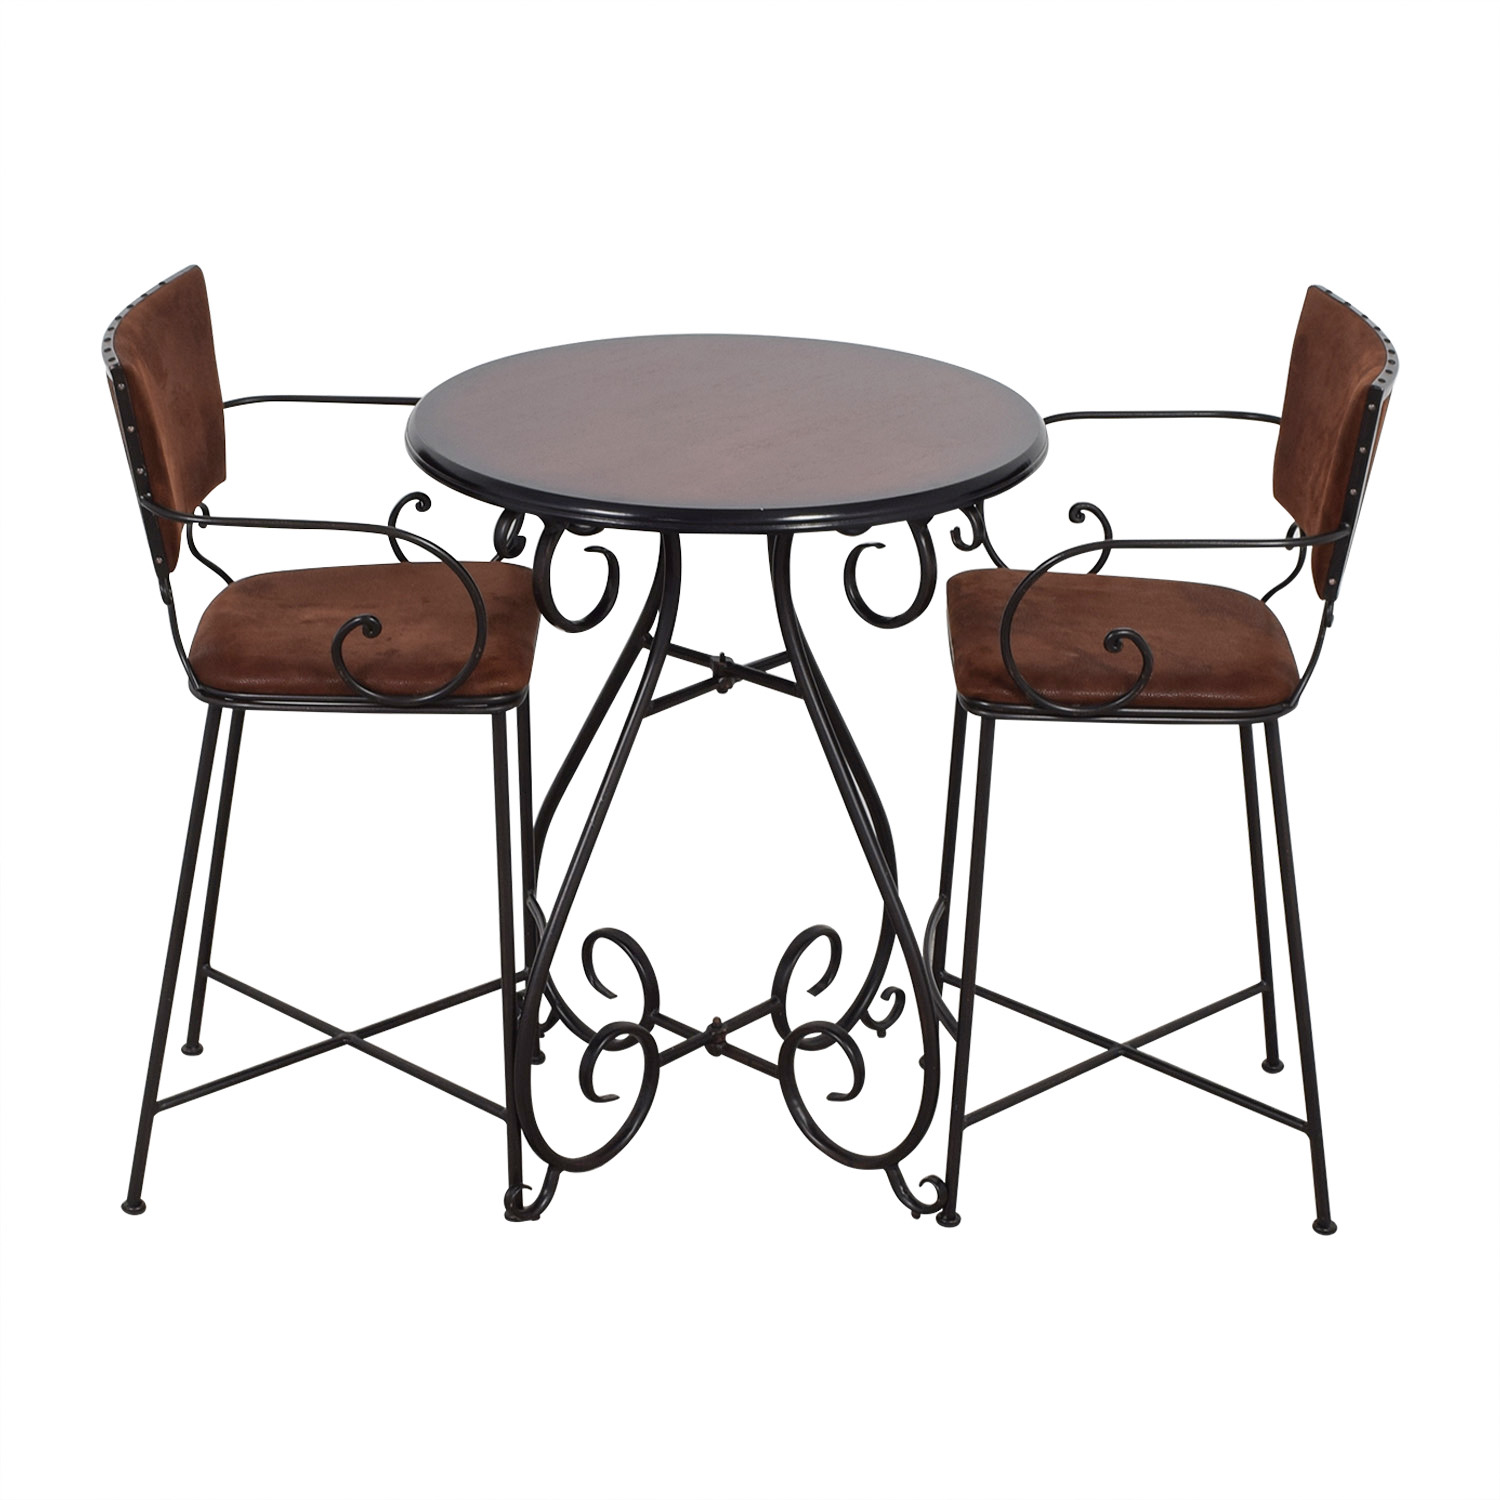 Pier 1 Imports Pier 1 Imports Chesington Tuscan Brown Bar Table with Chairs discount